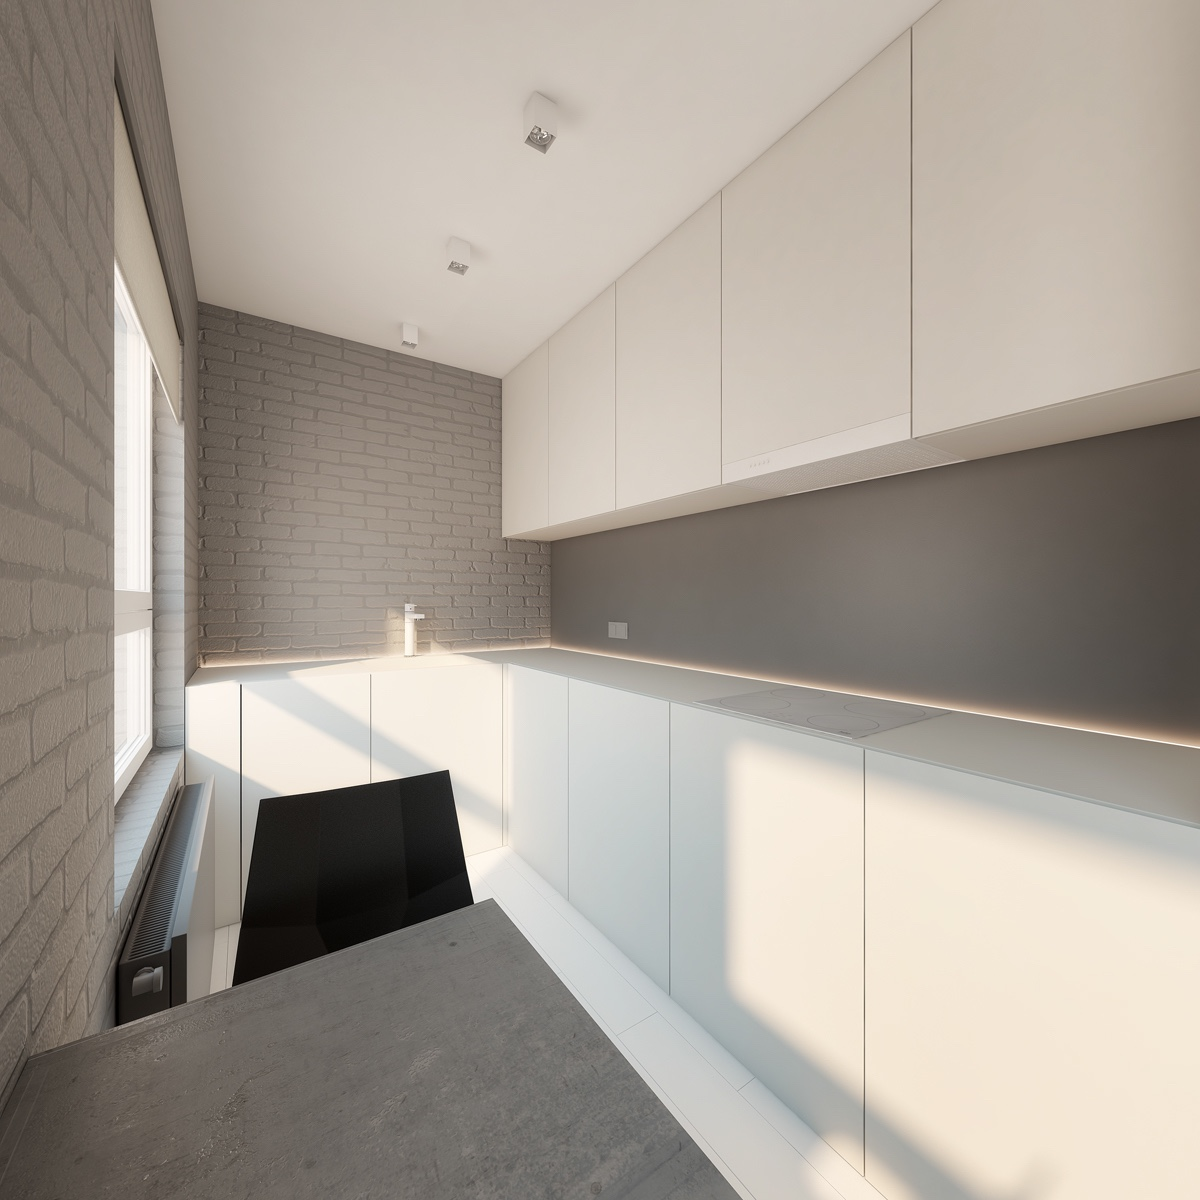 Clean, light and white kitchen grey inlet walling good use of corridor space